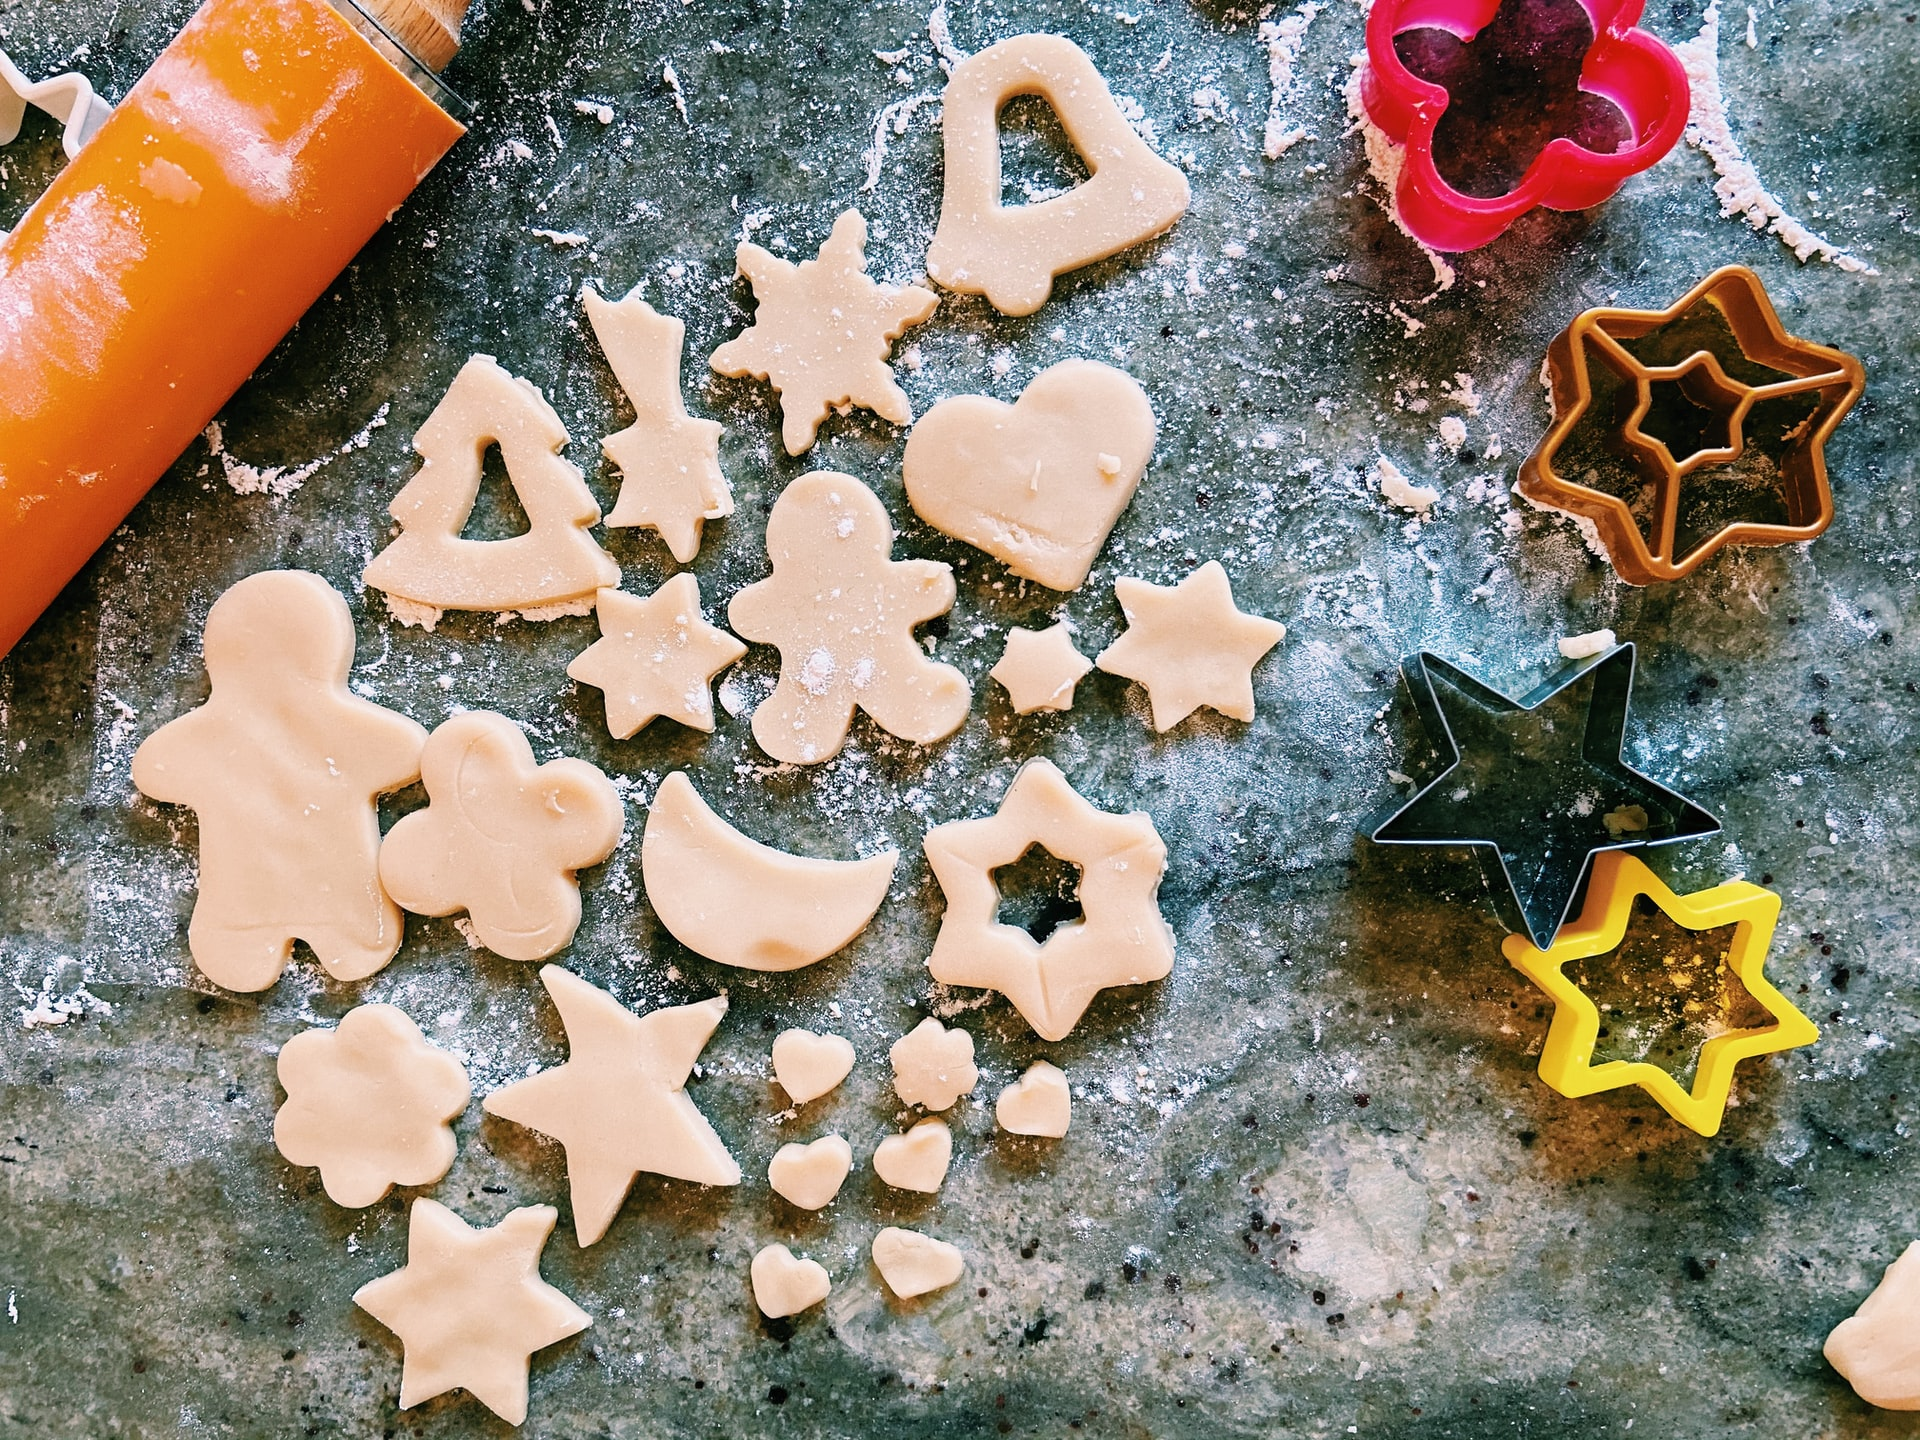 Set Yourself Up for Holiday Cookie Success With These Kitchen Organizing Tips